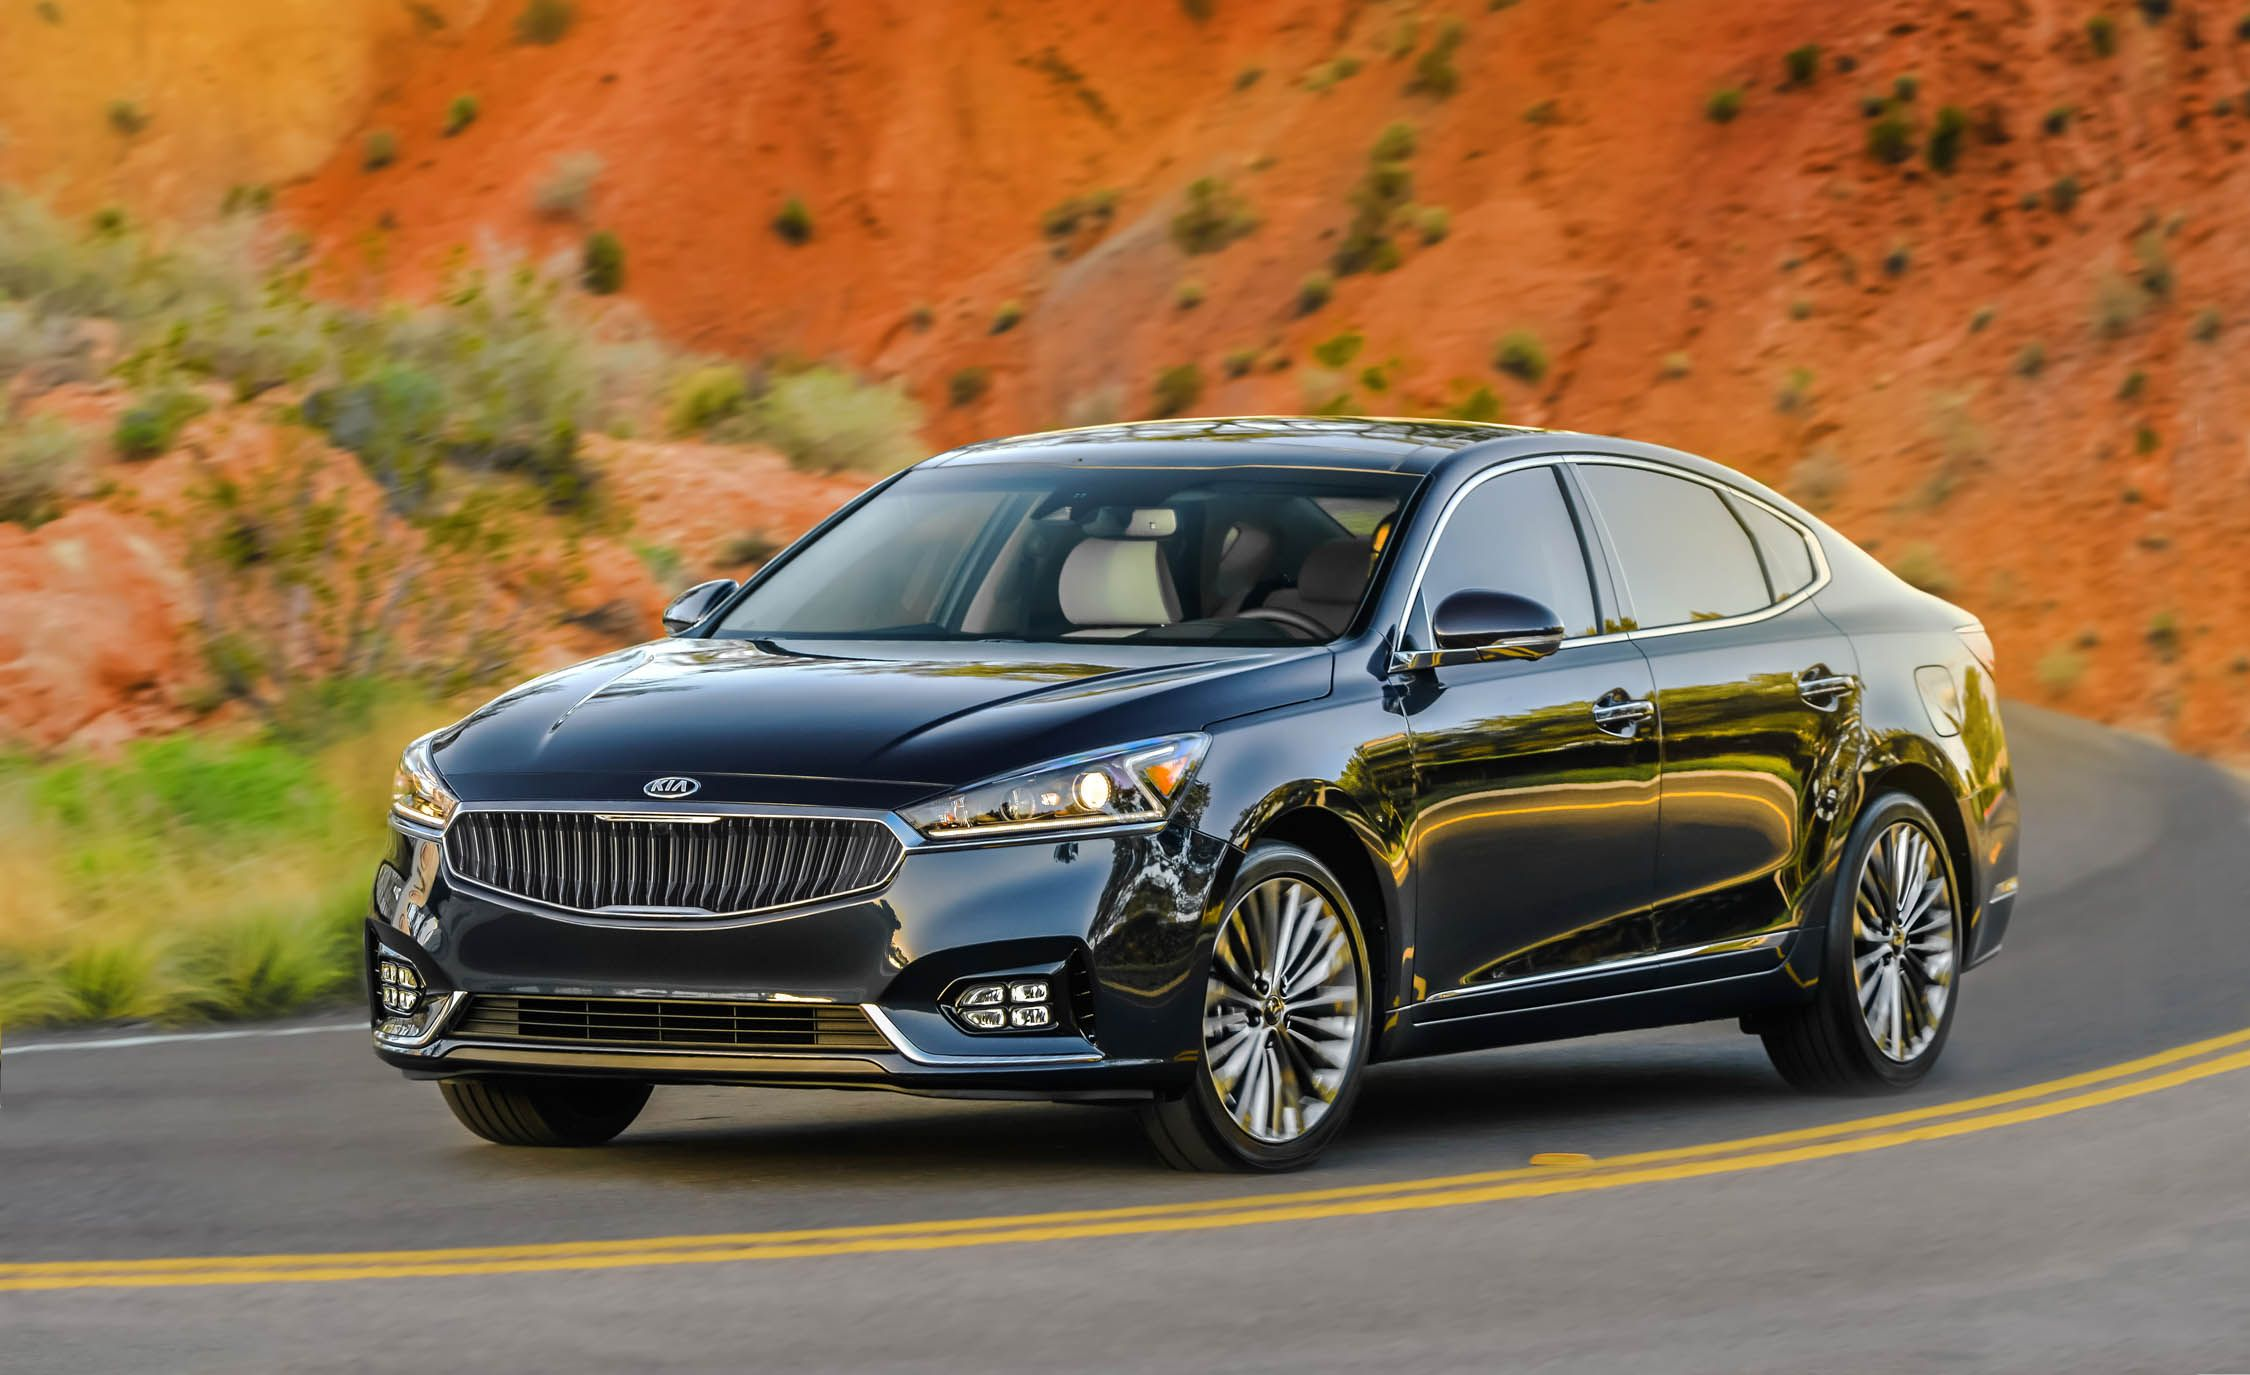 2017 kia cadenza first drive review car and driver rh caranddriver com 2016 Kia Cadenza 2016 Kia Cadenza